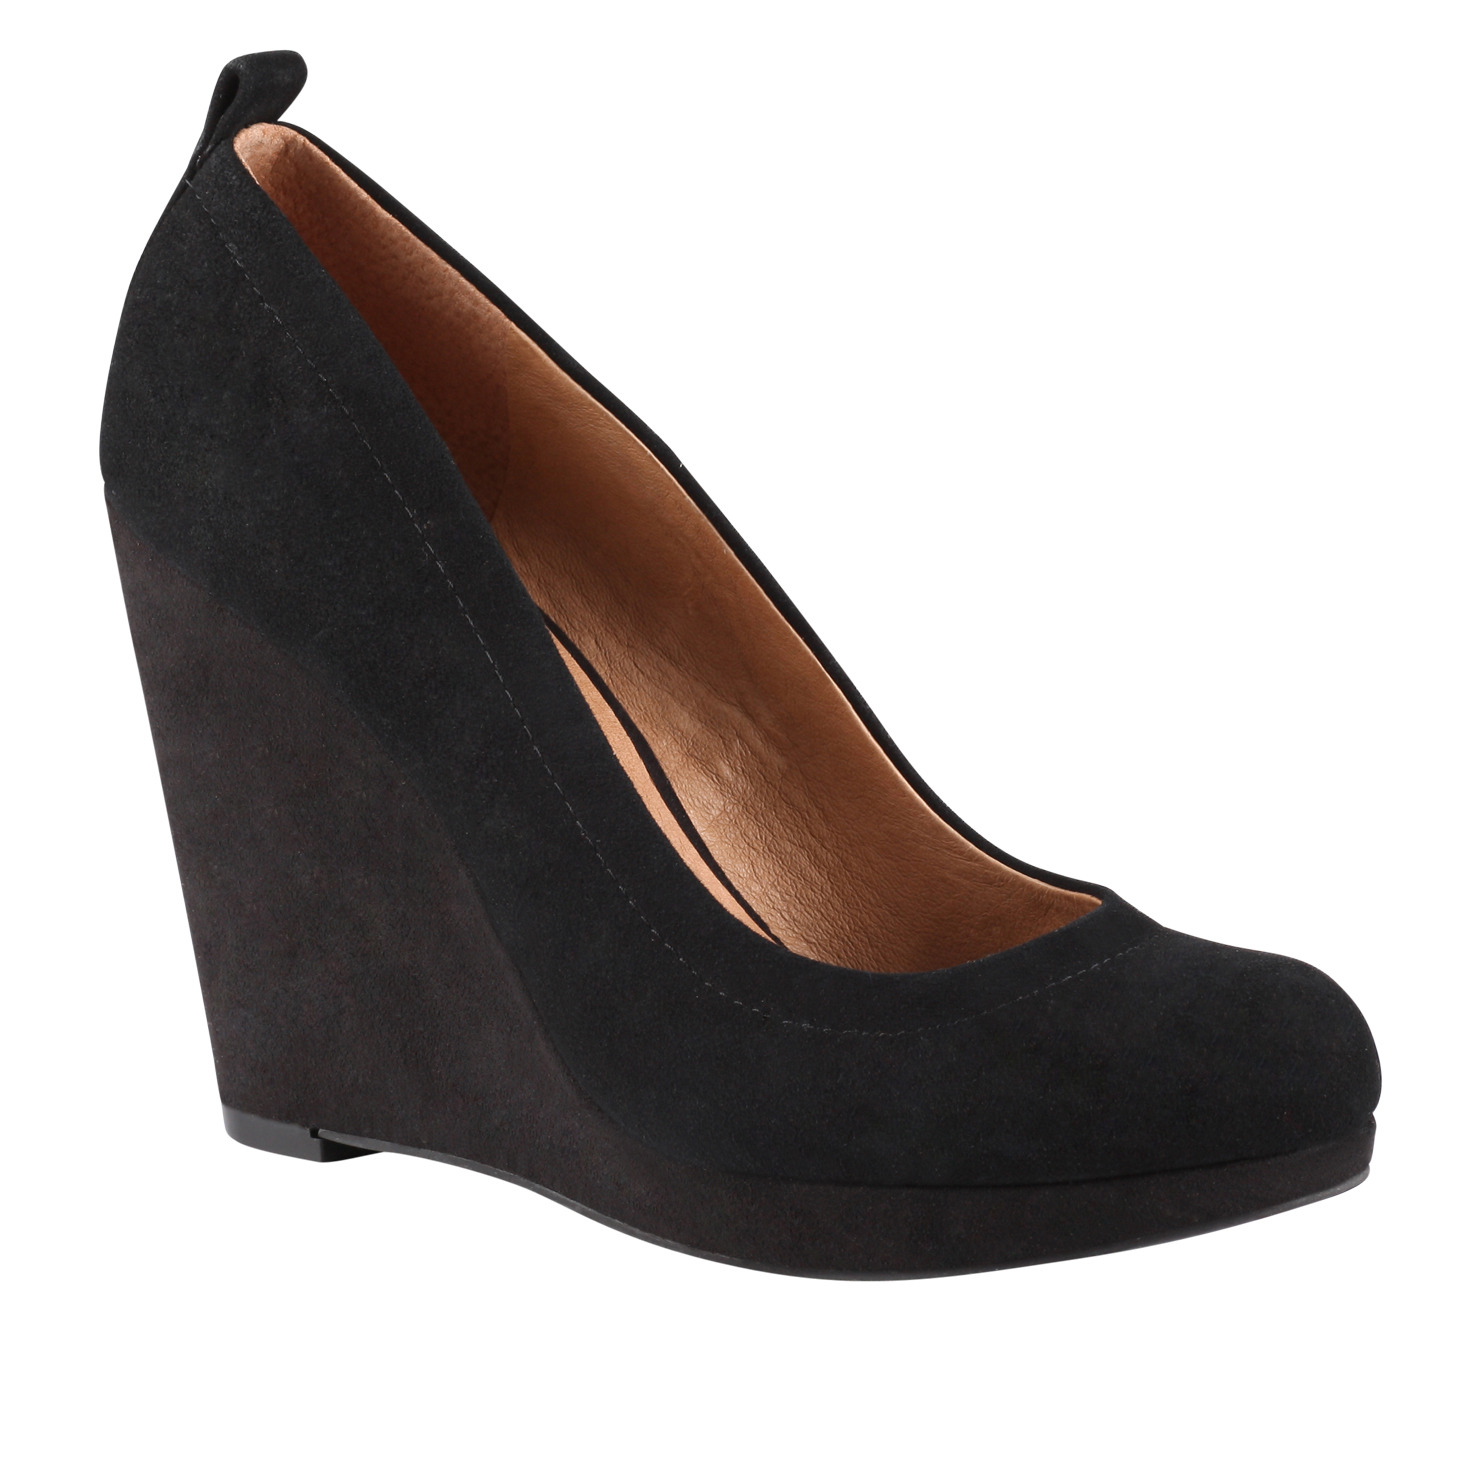 odelinia s wedges shoes for sale from aldo shoes